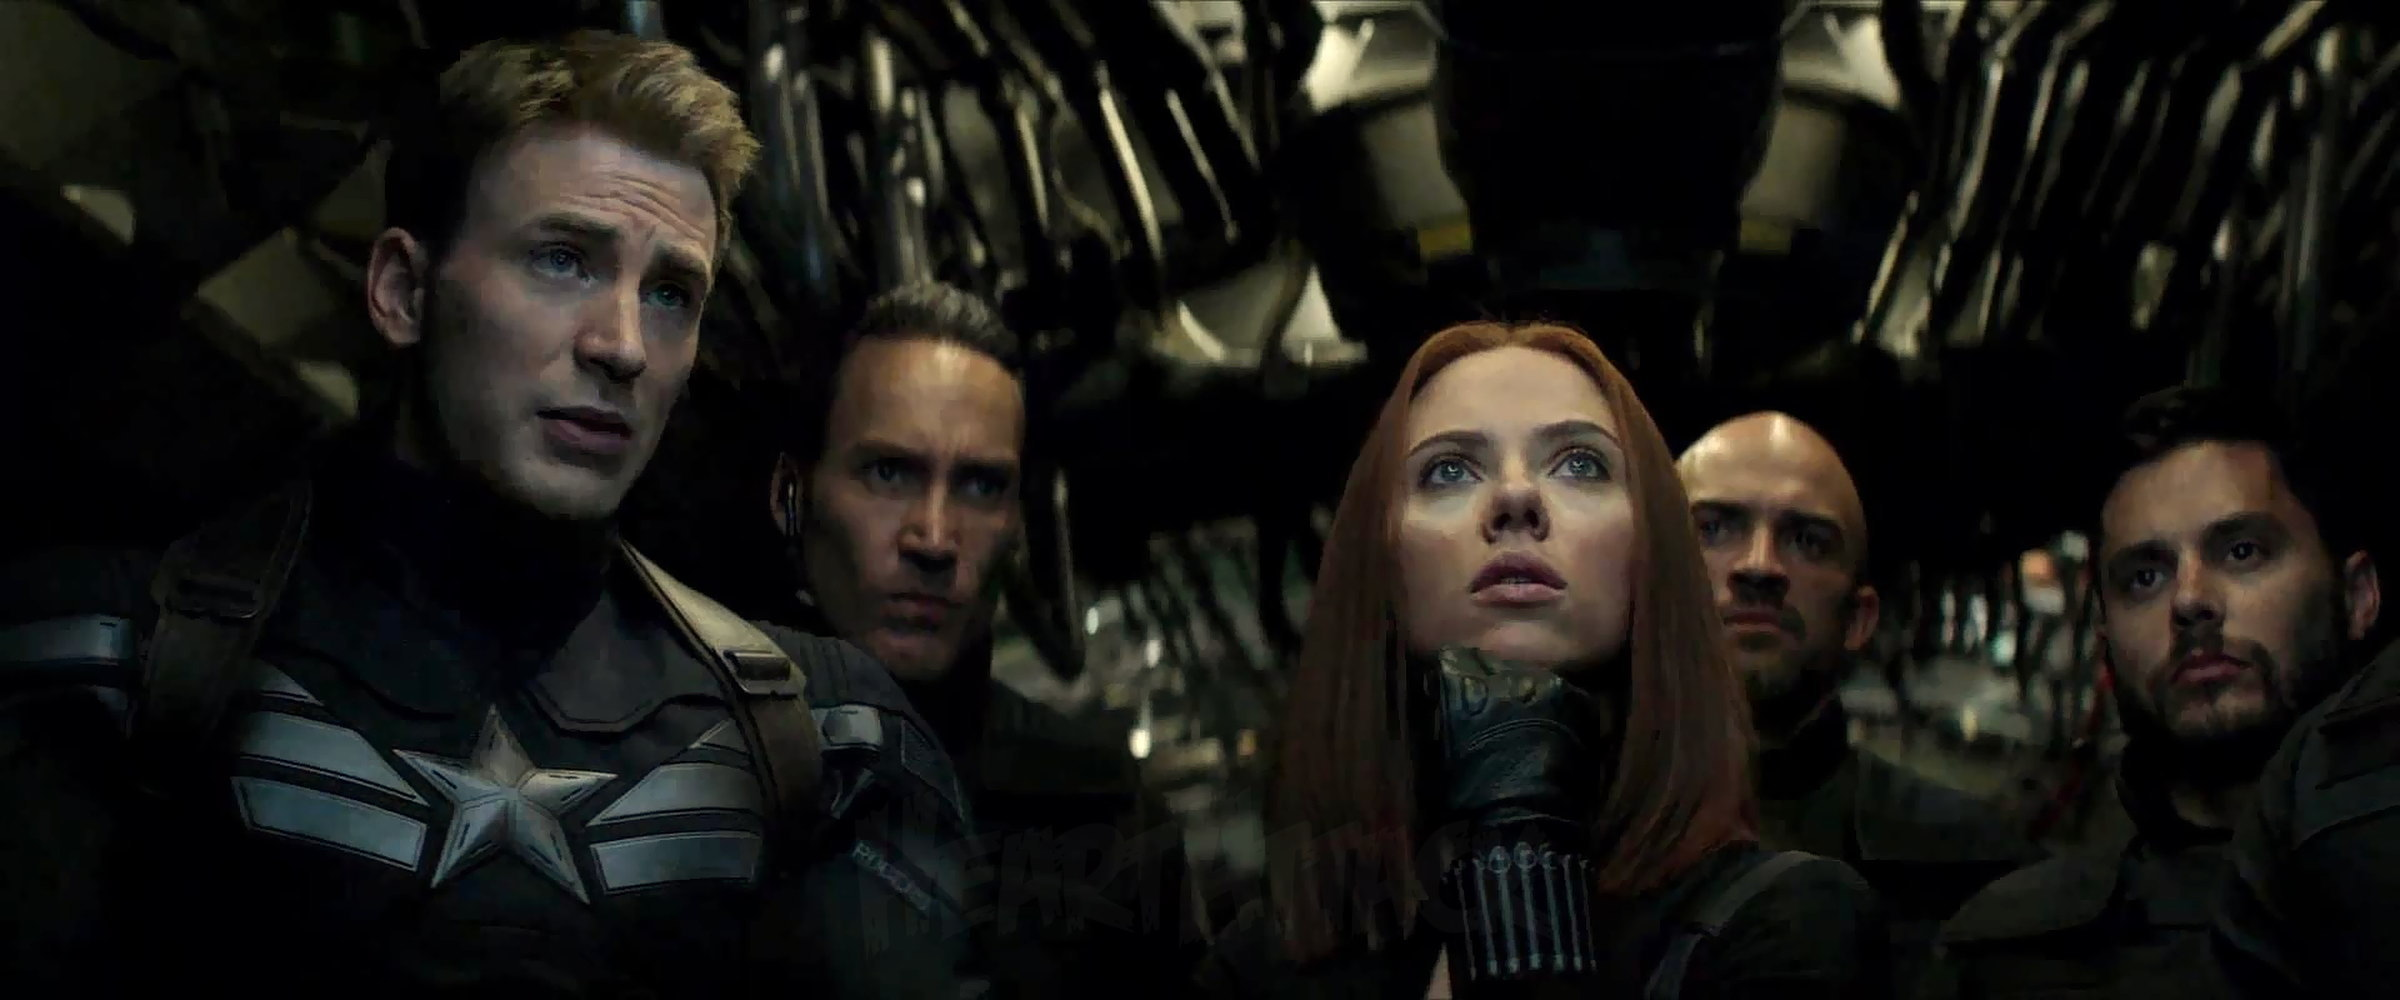 14030801_Captain_America_The_Winter_Soldier_02.jpg